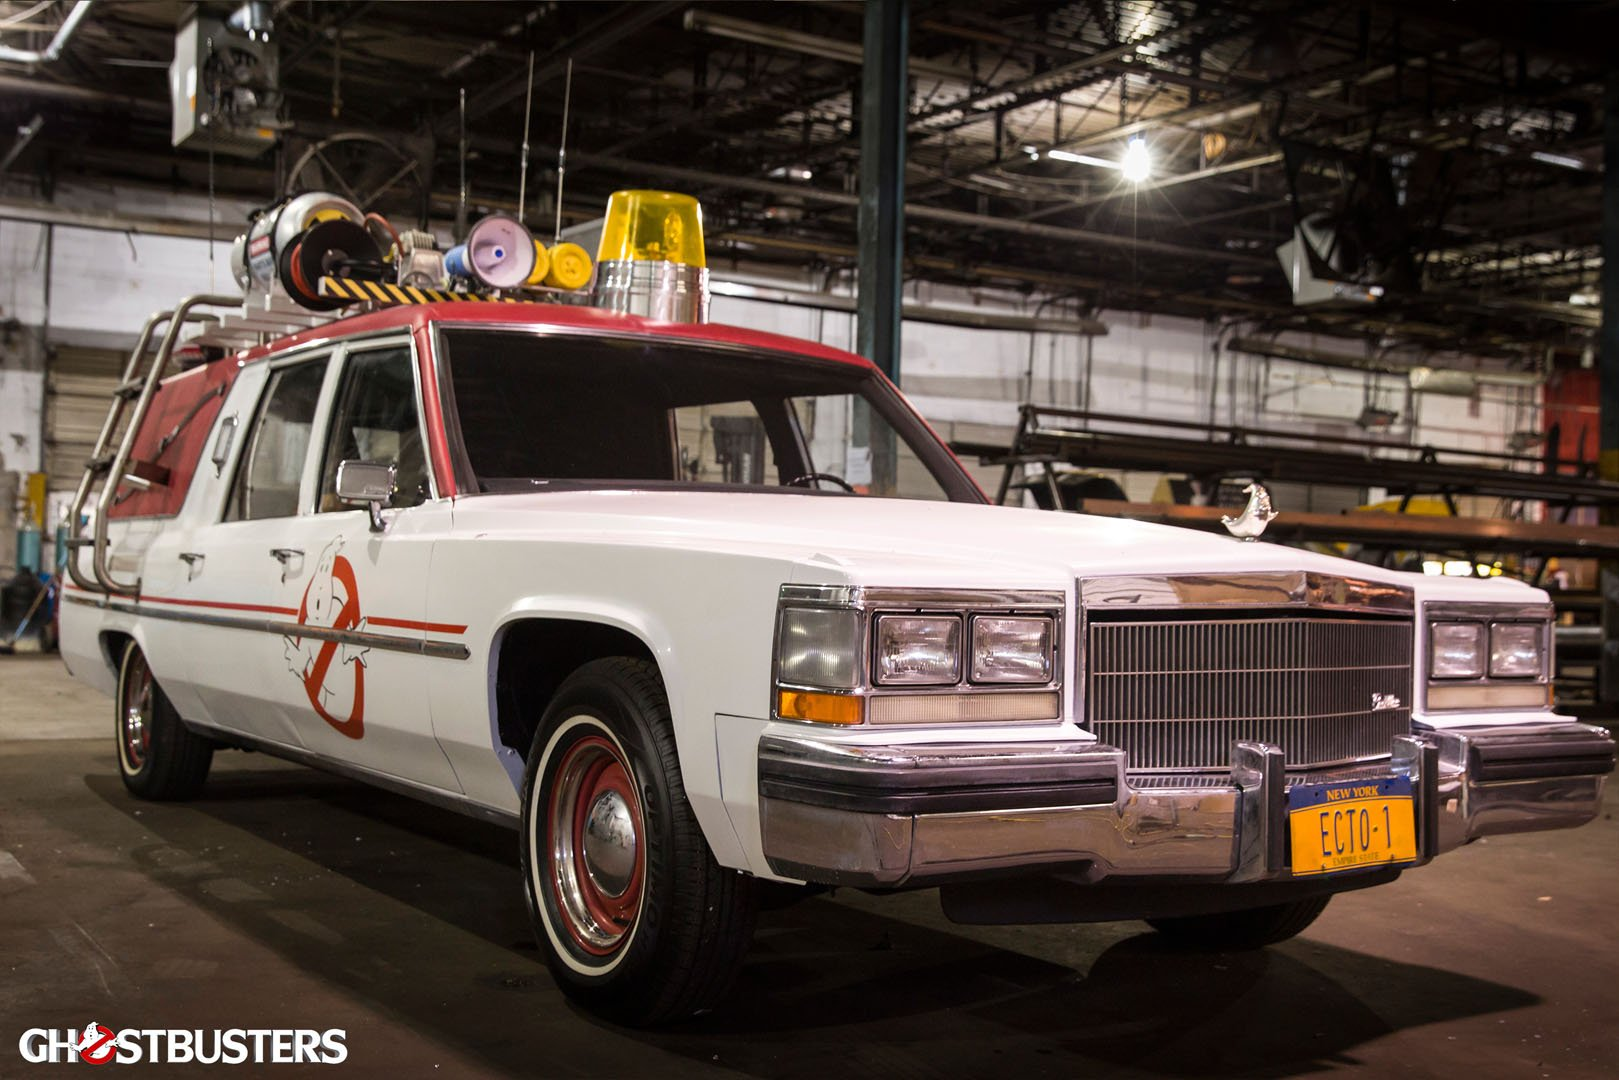 ghostbusters_2016_image_008